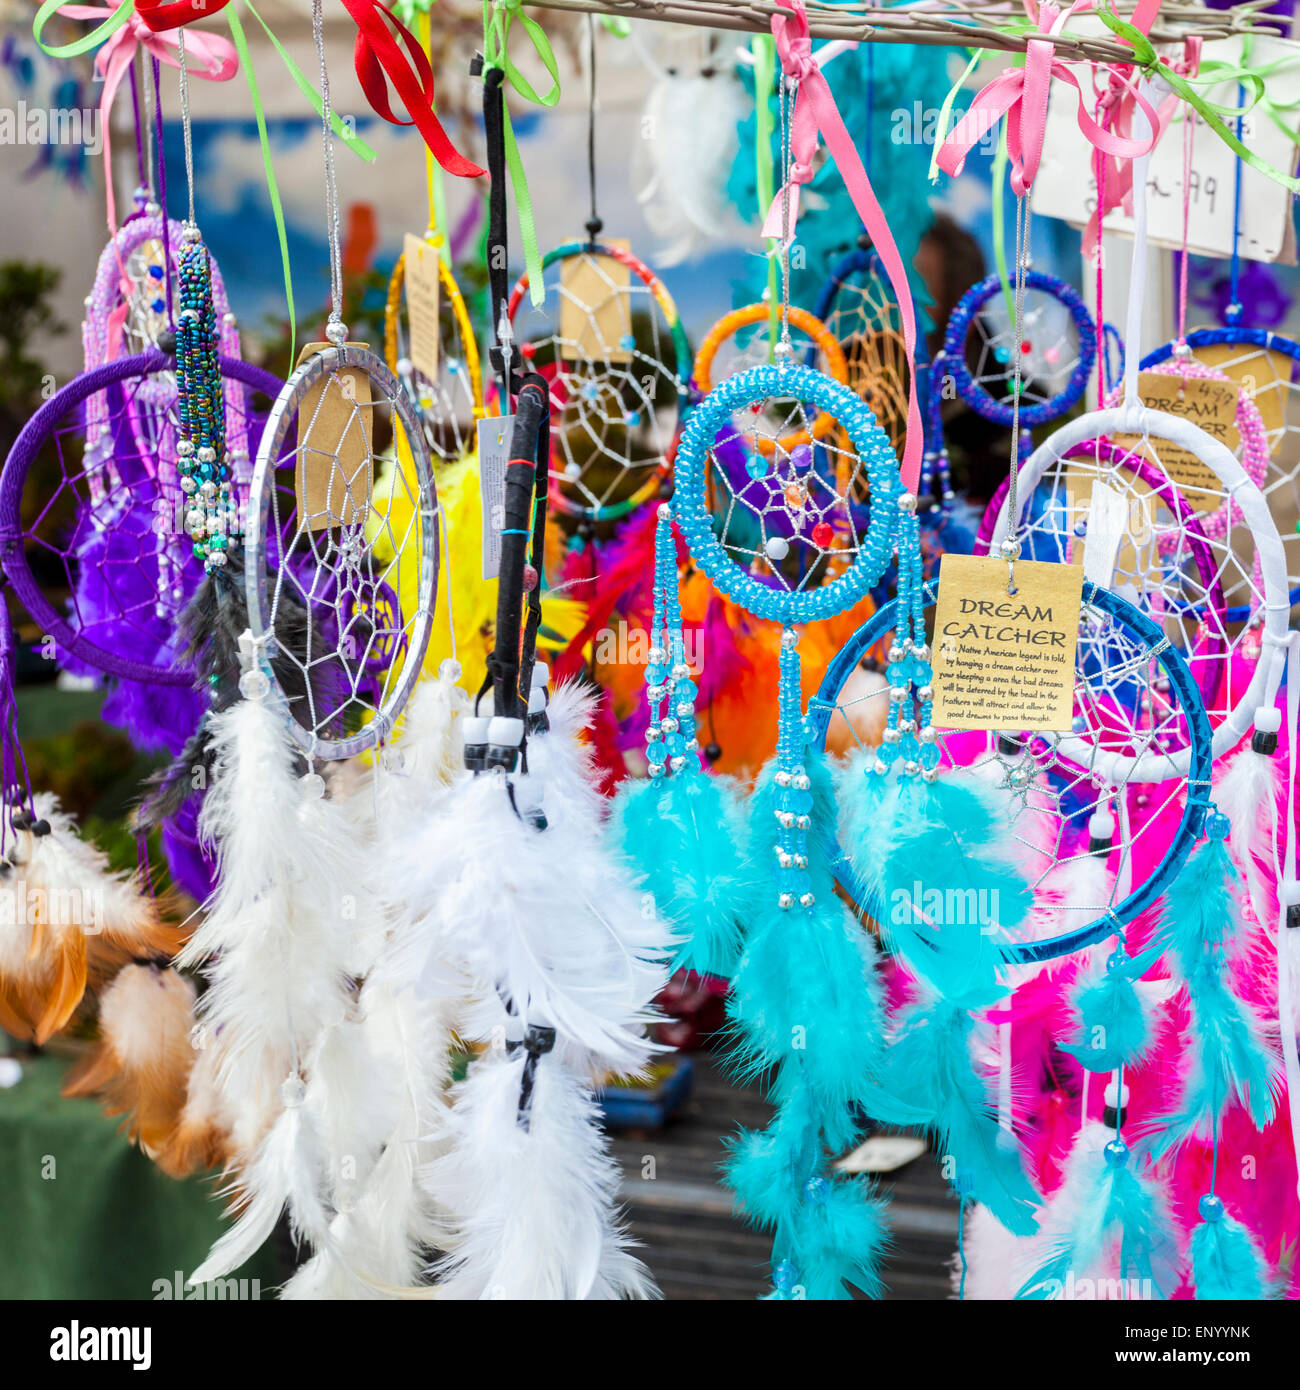 Dream Catchers For Sale Uk Dream catchers for sale on a market stall Nottingham England UK 3